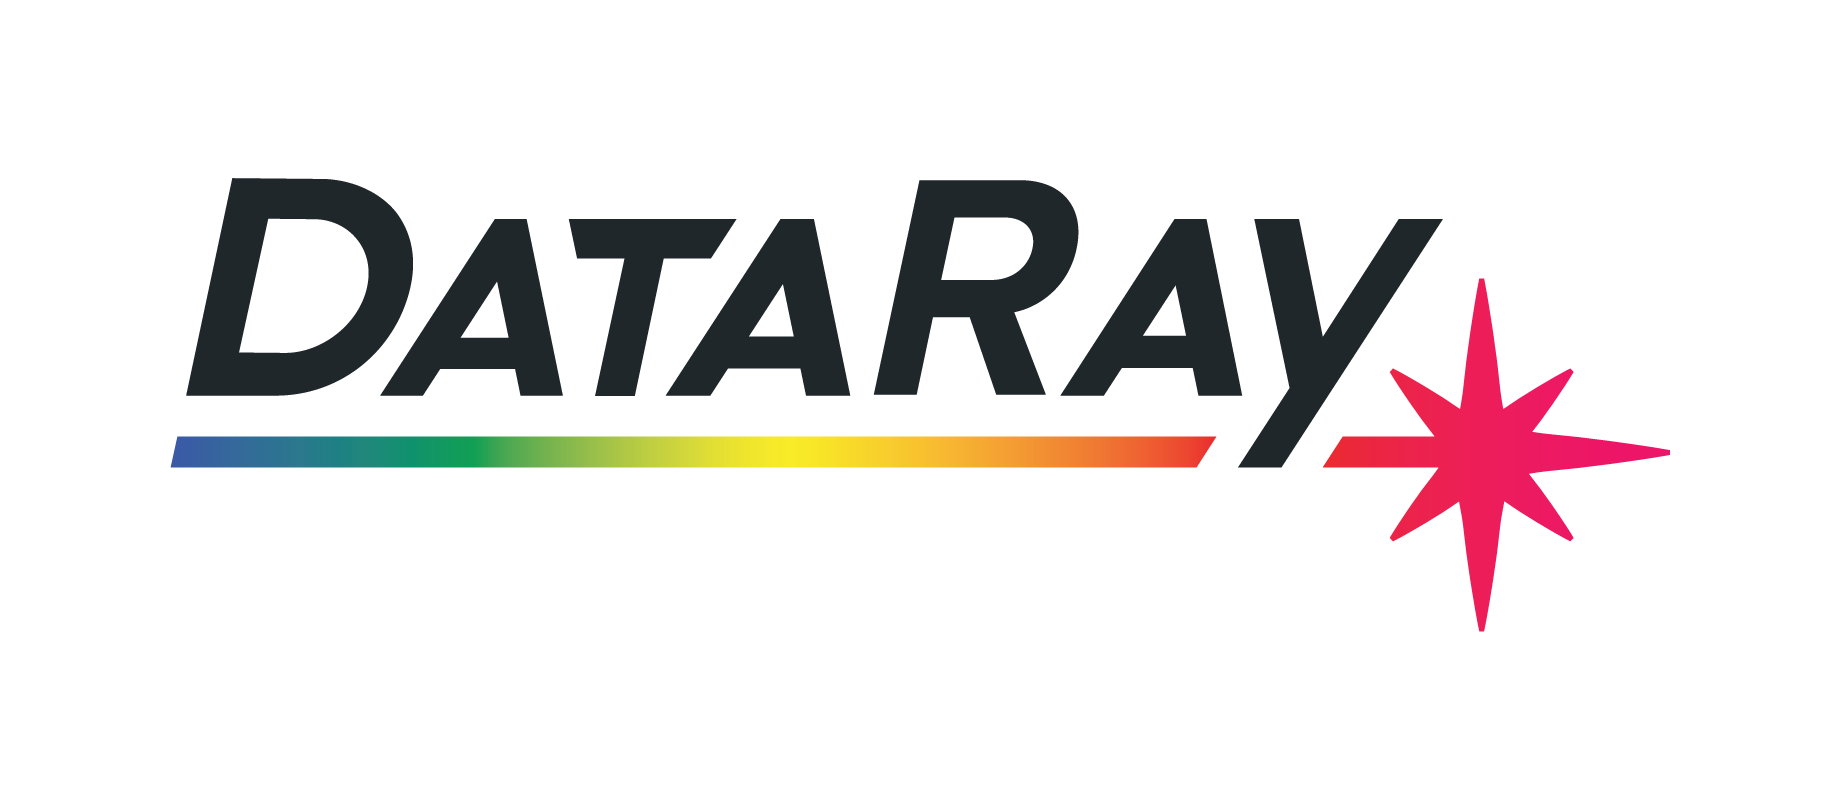 DATARAY INC.